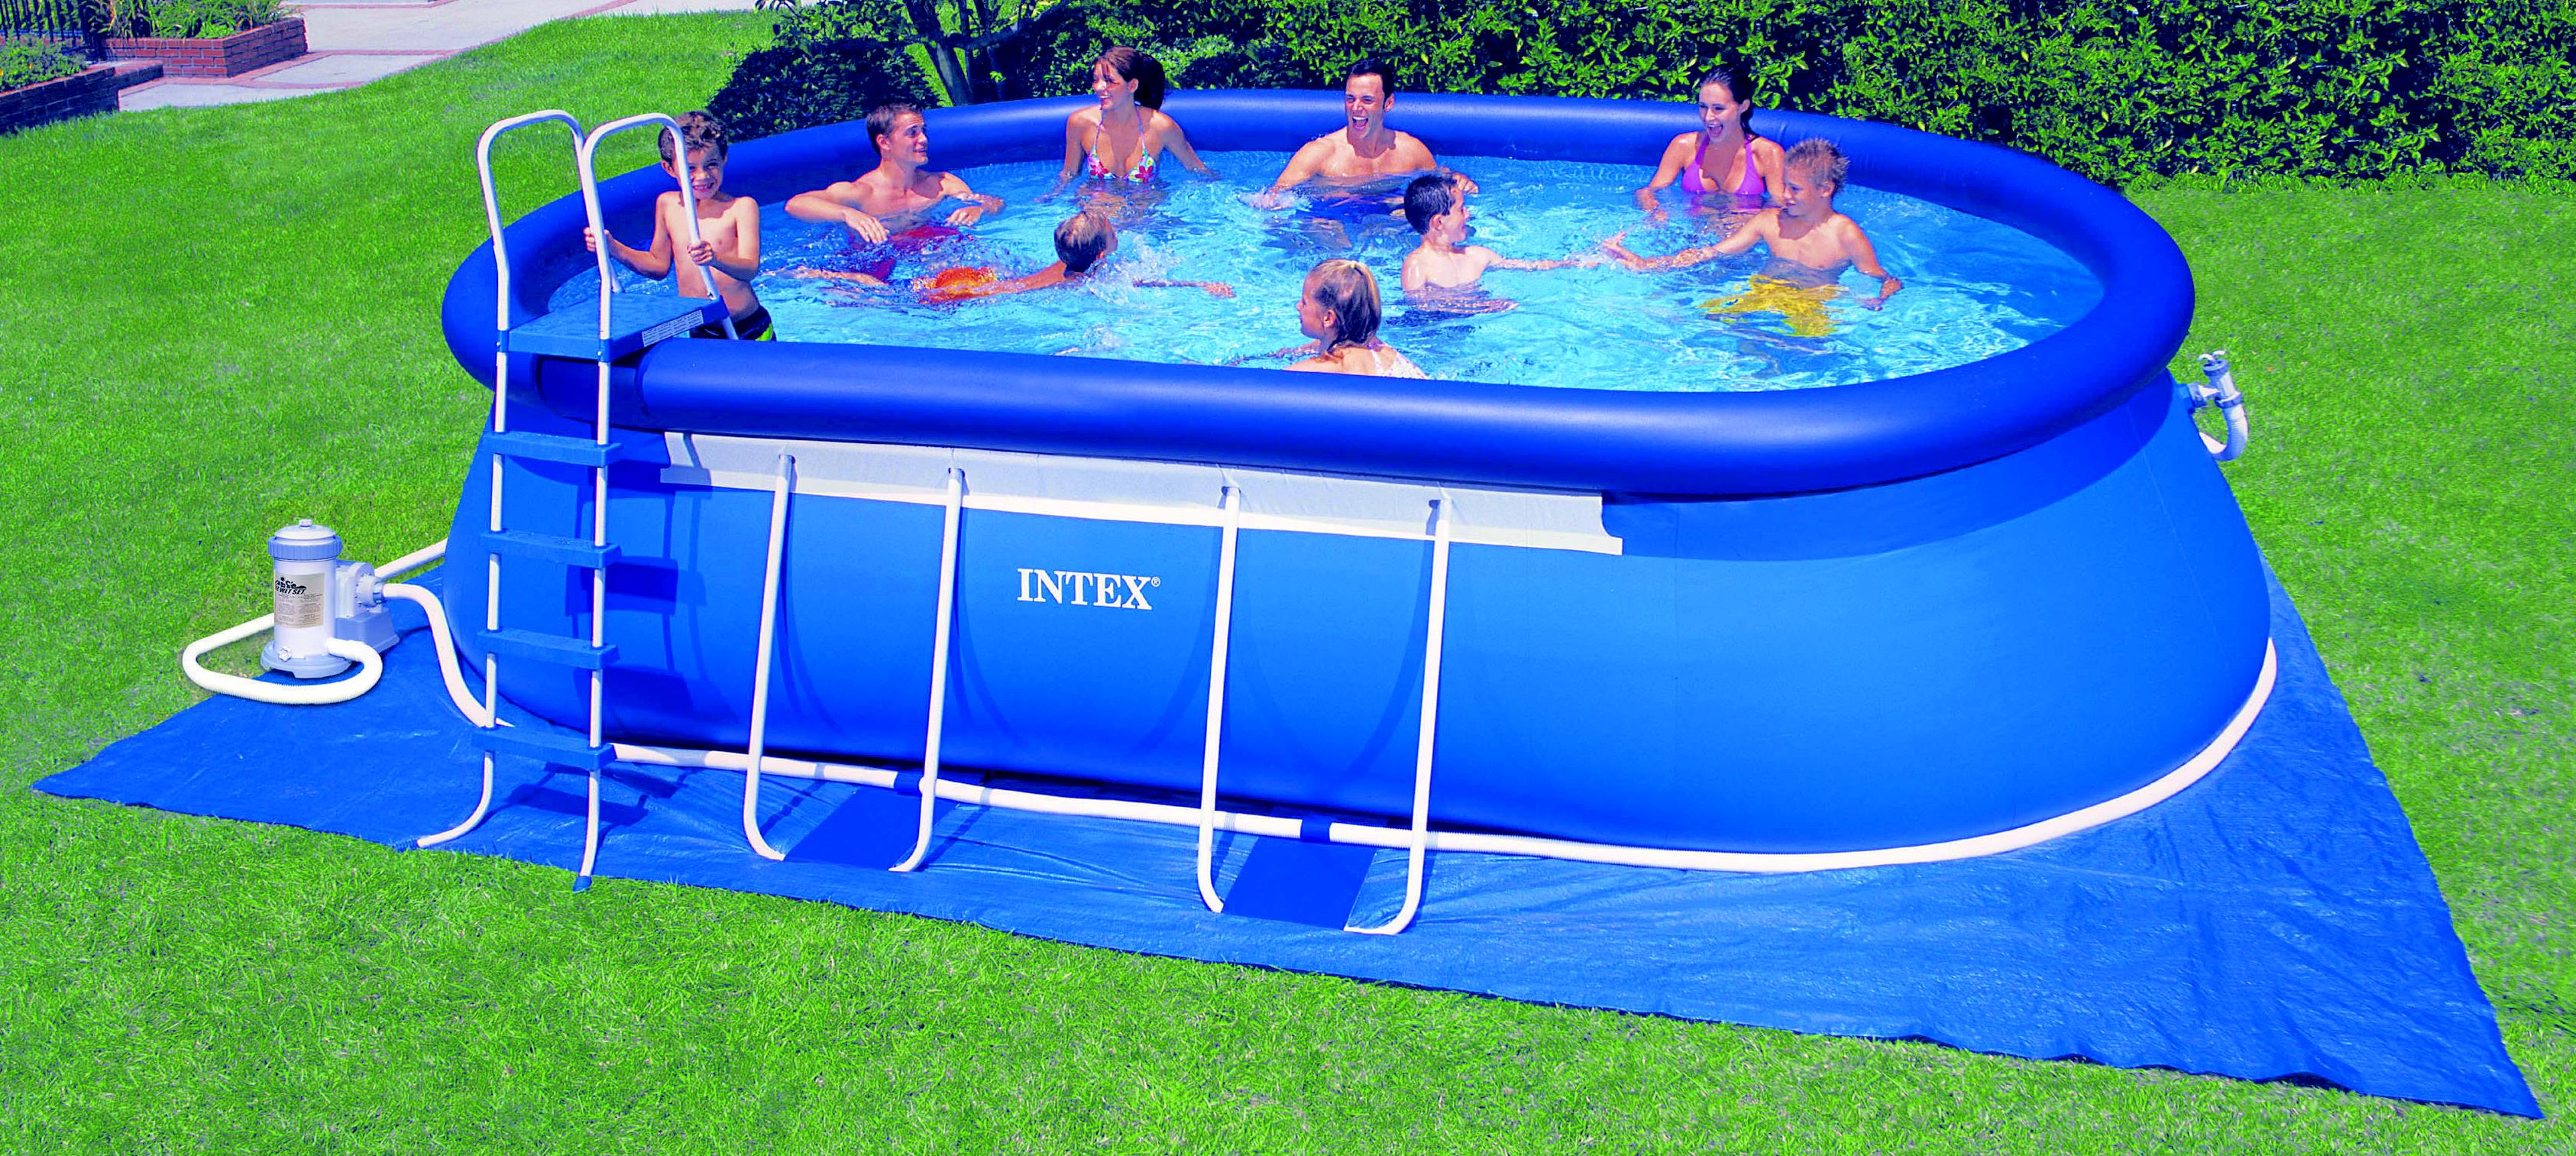 Pool zubeh r intex stutzenset propfenset siebgitter for Obi intex pool